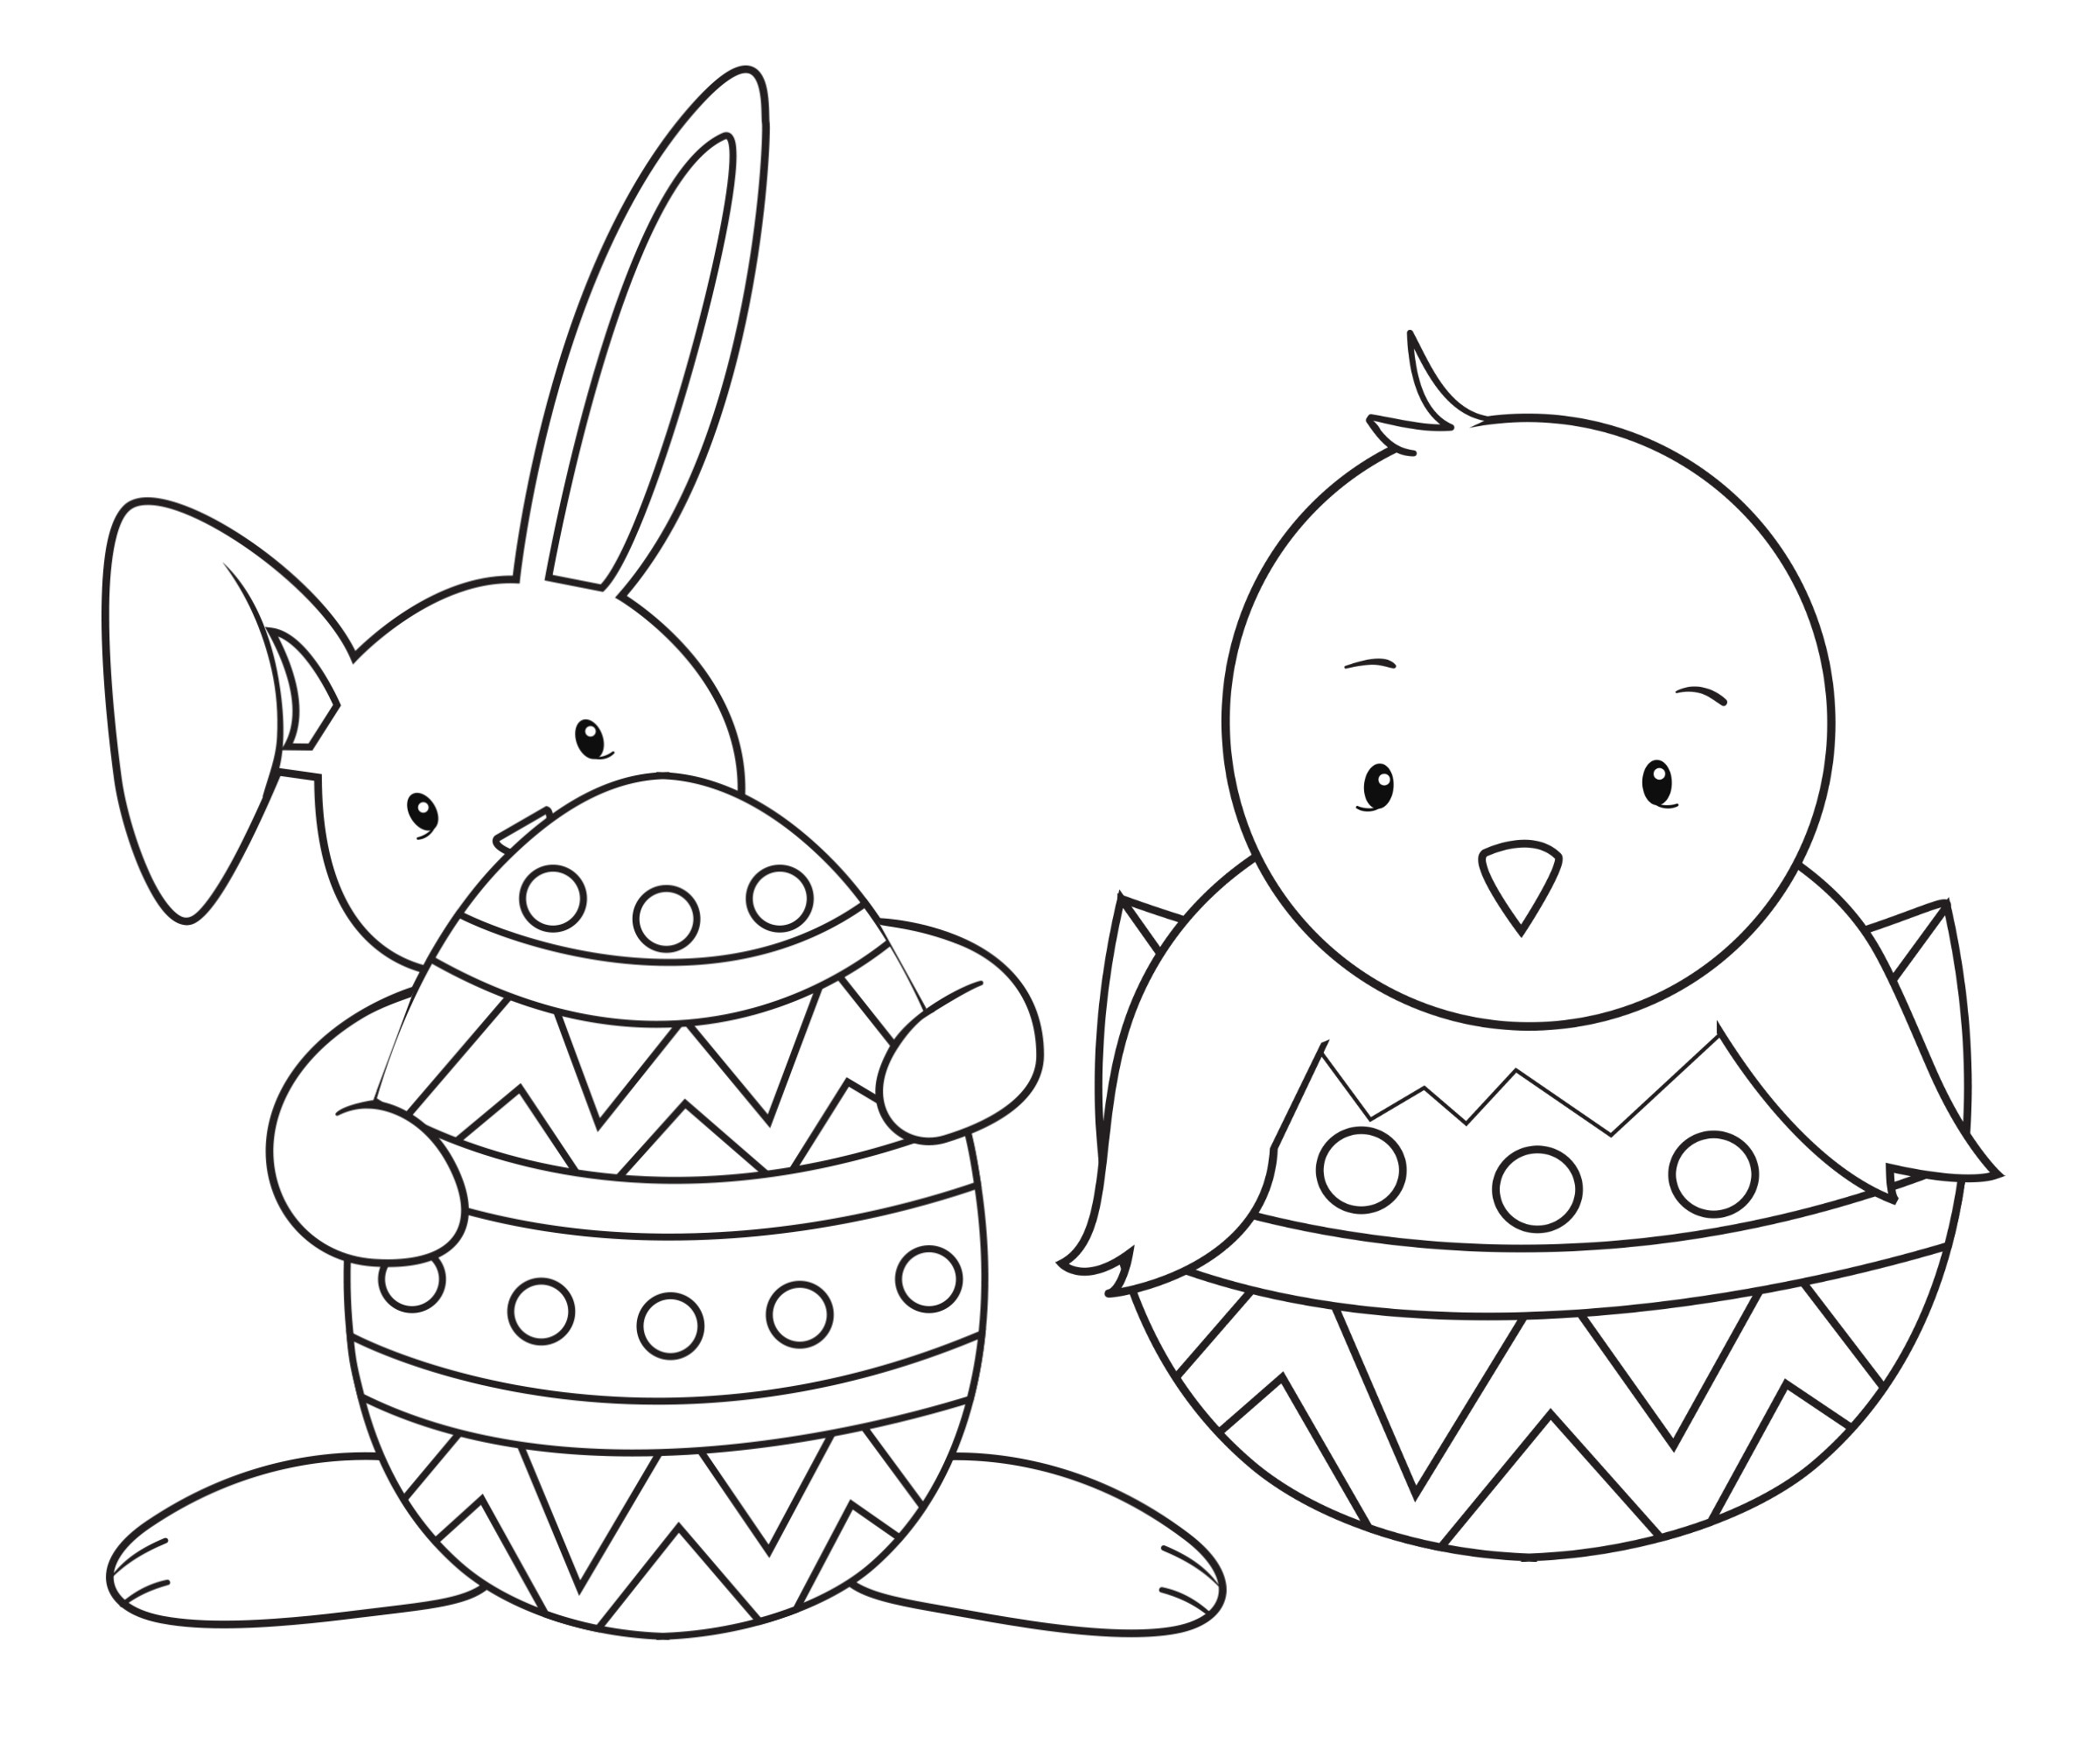 Coloring Book Pages Easter  Easter Coloring Pages for Kids Crazy Little Projects